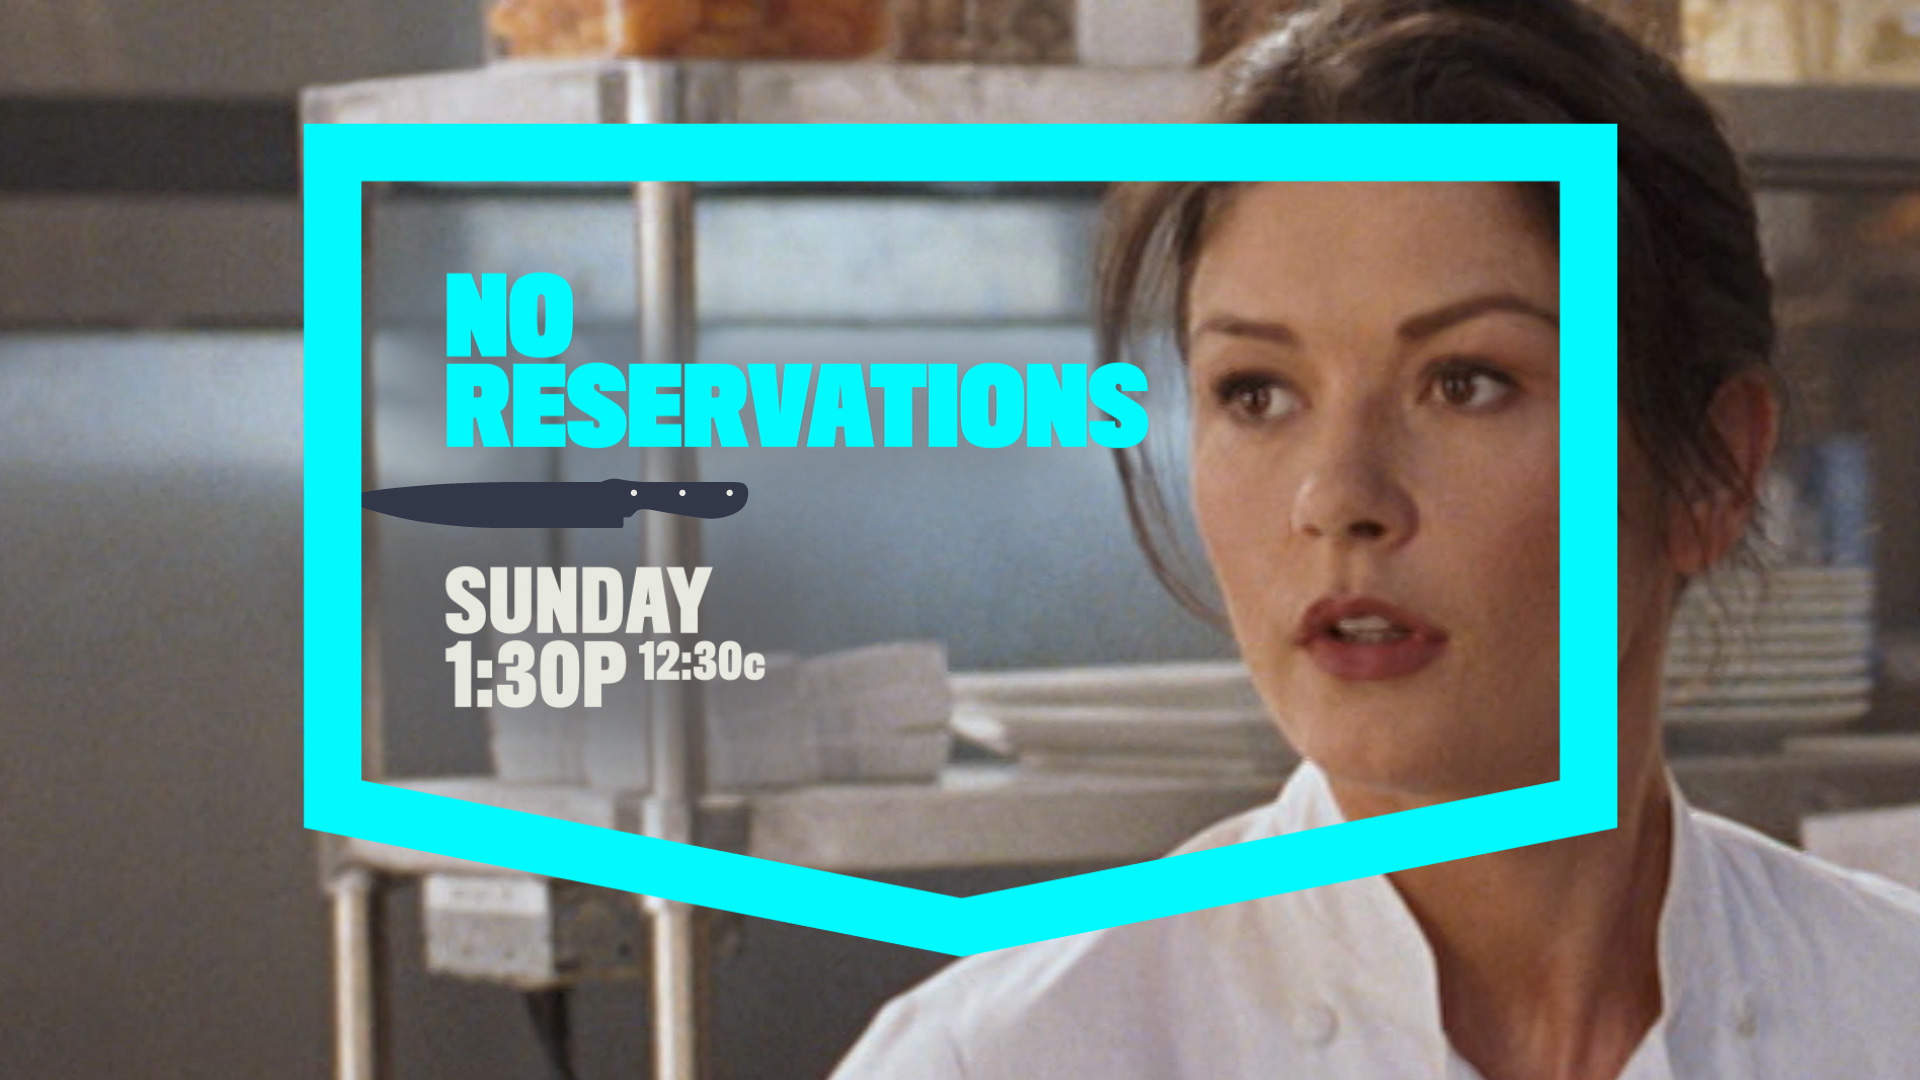 NoReservations_EP_02.jpg